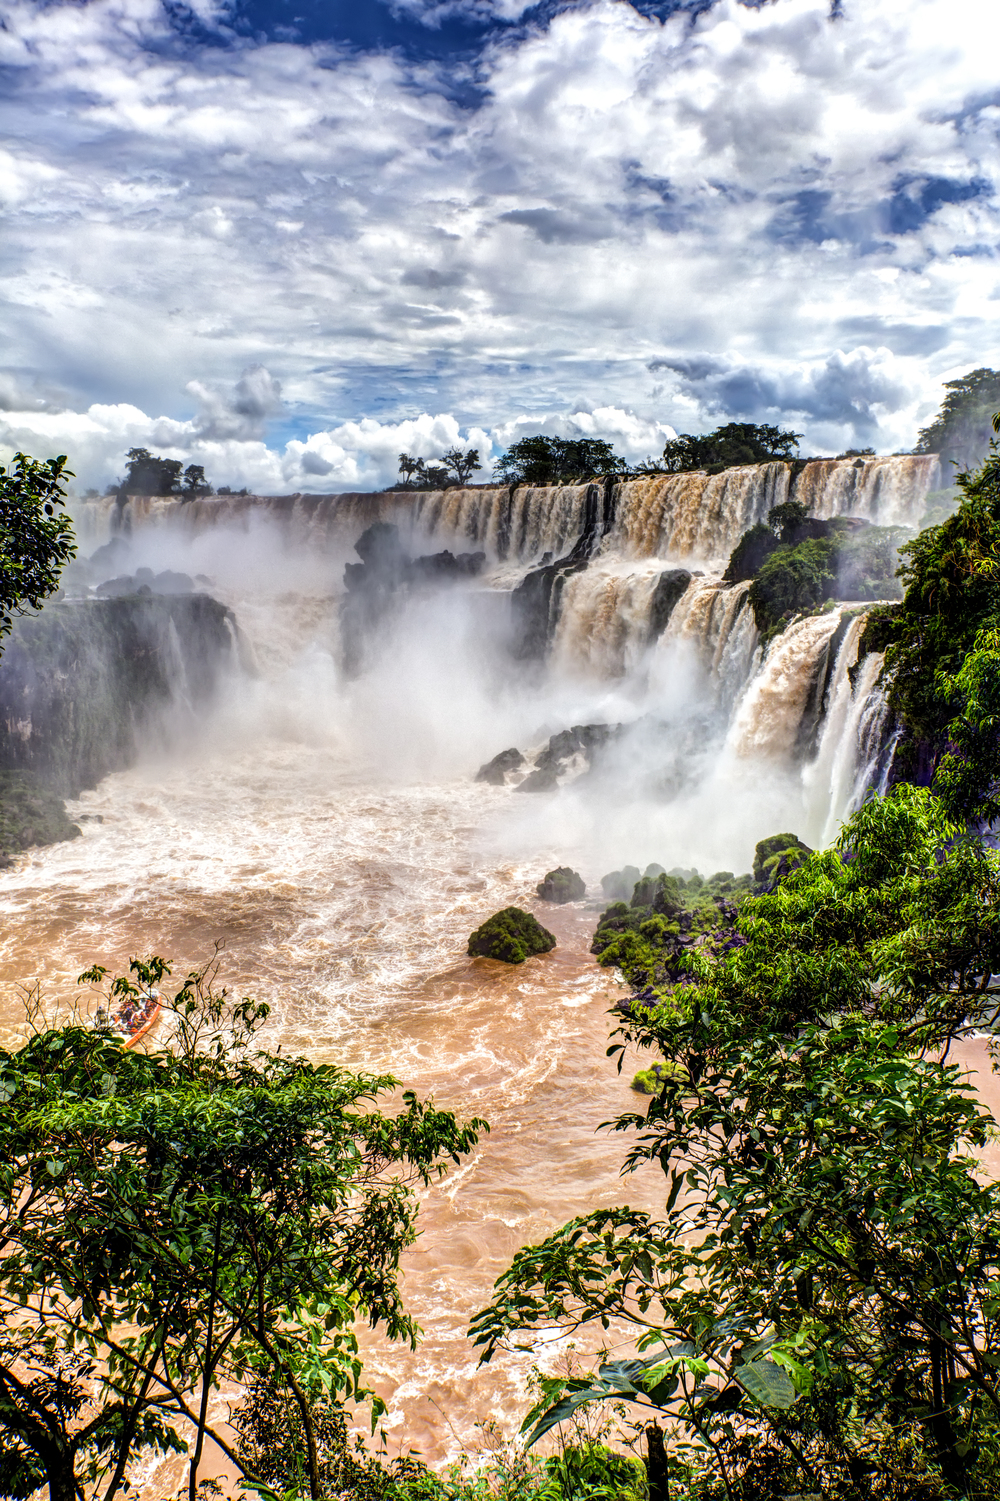 The Curve Of Iguazu Falls